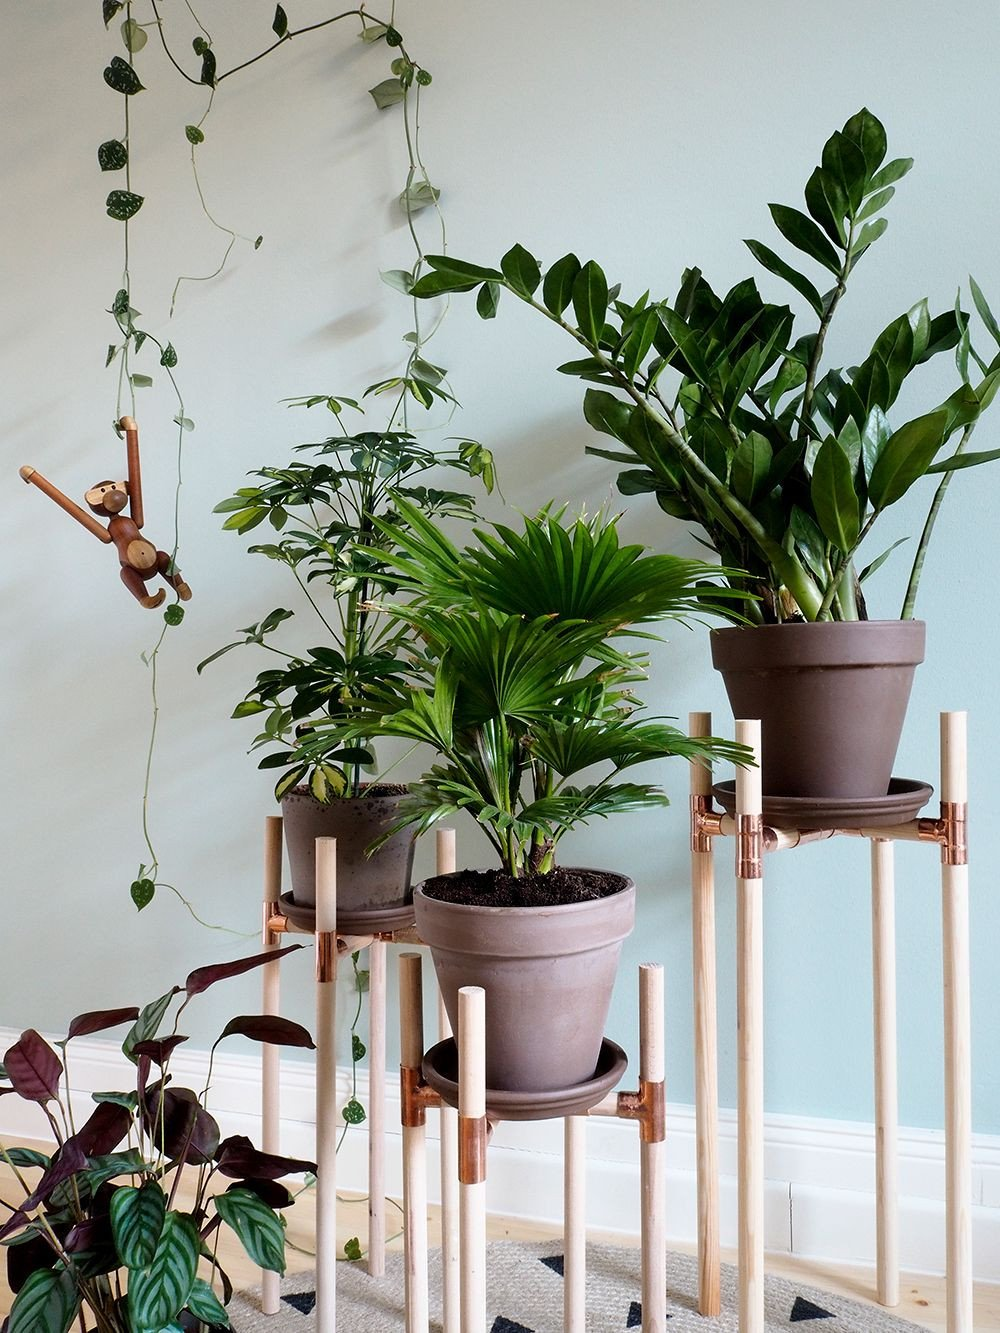 Plant Stand Ideas to Fill Your Living Room New 24 Diy Plant Stand Ideas to Fill Your Home with Greenery Plant Stand Ideas